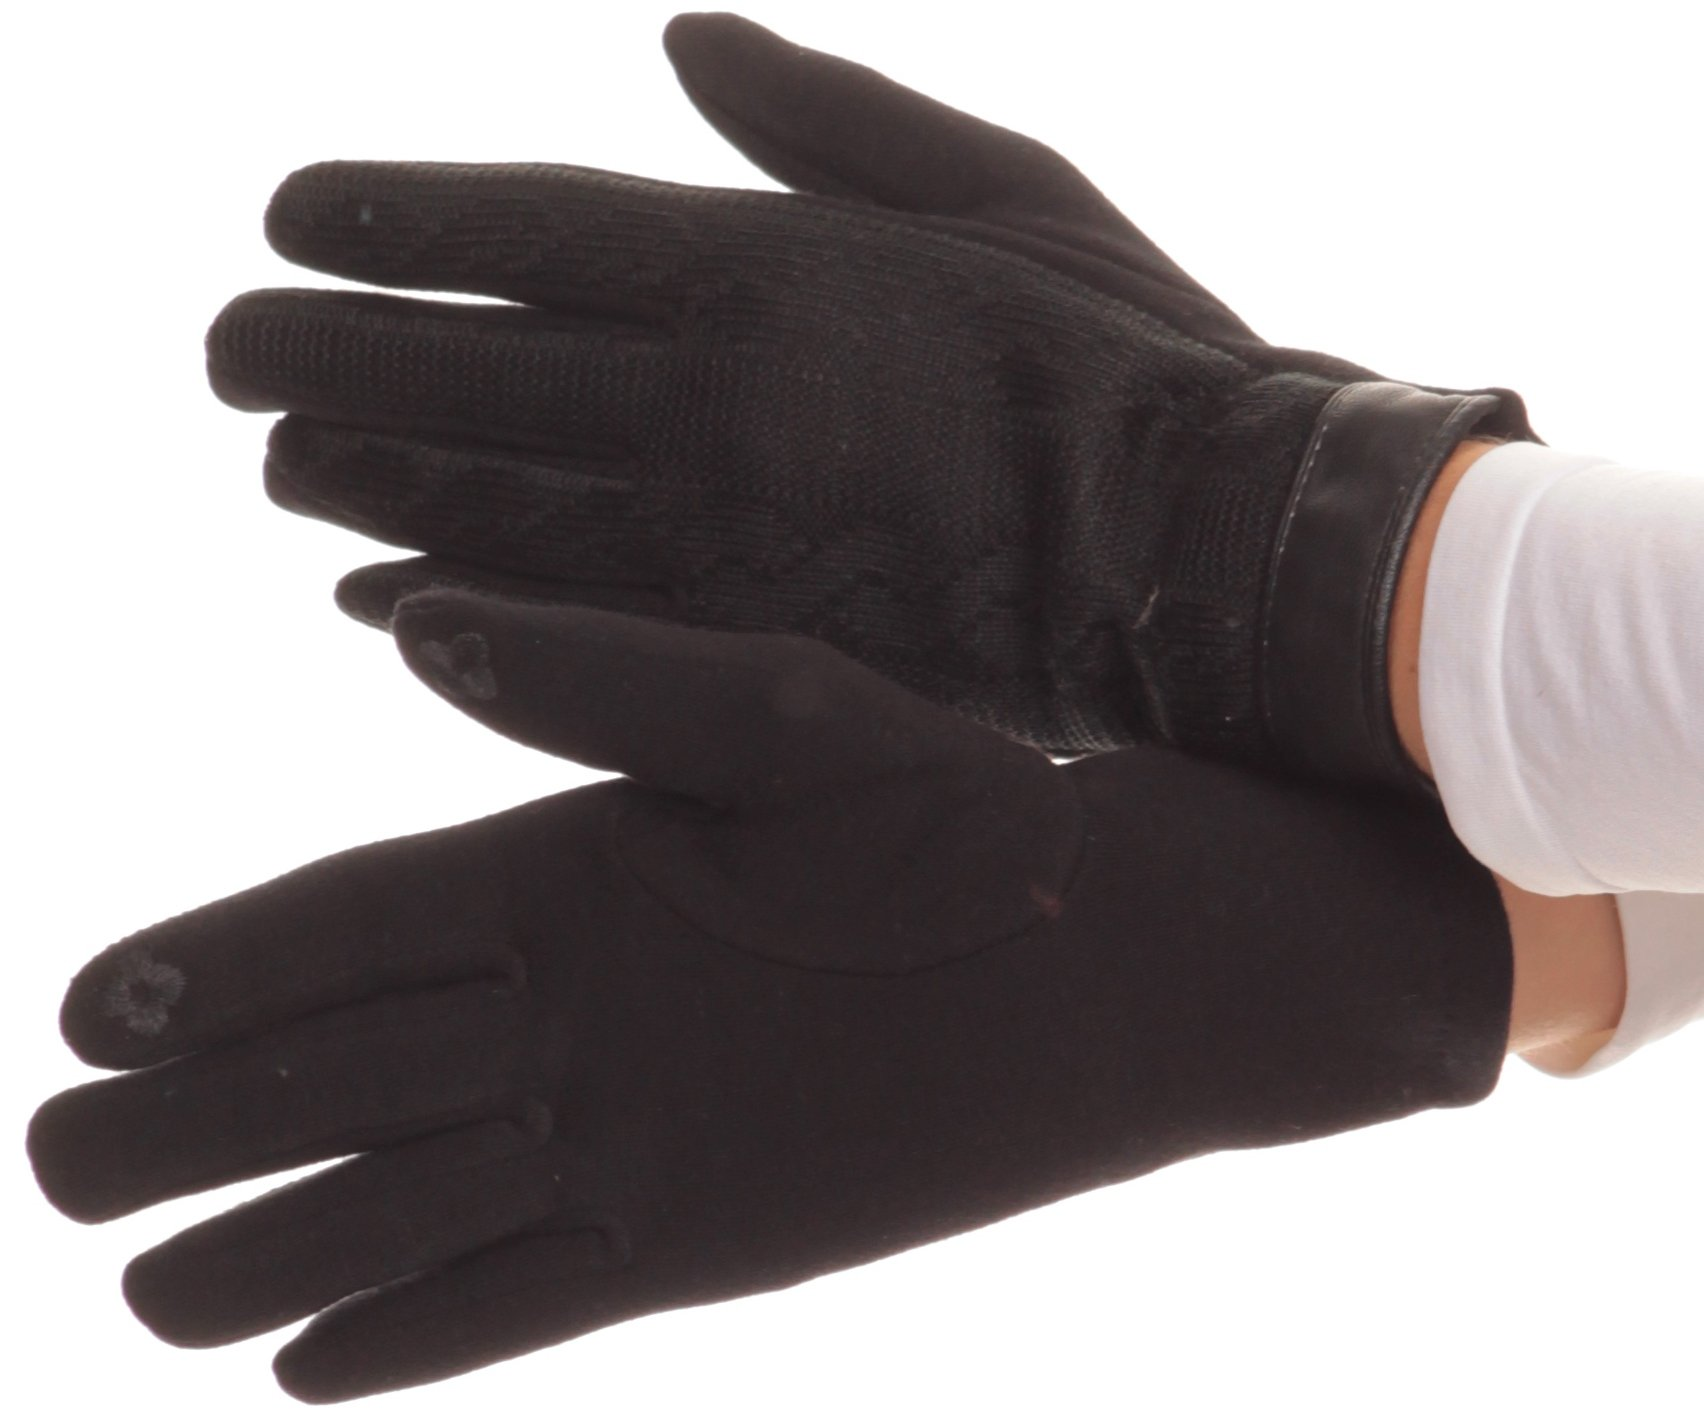 Sakkas 16167 - Rayanne Soft Classic Knit Faux Leather Wrist Band Touch Screen Warm Gloves - Black - L/XL